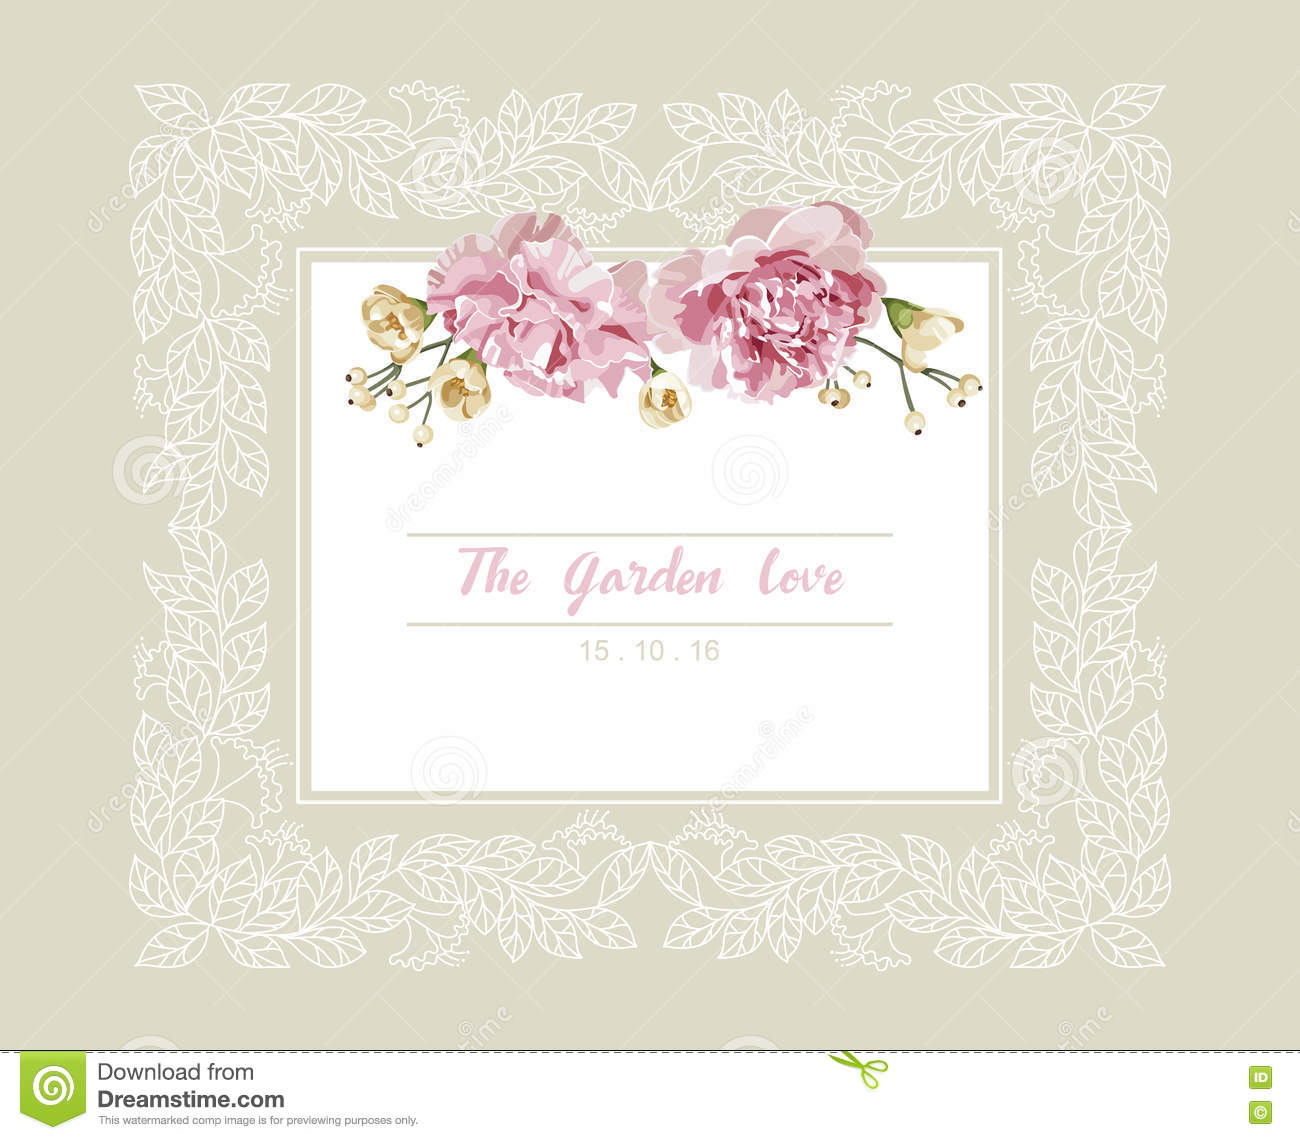 Romantic Wedding Invitation Vintage Card With Pink And Yellow